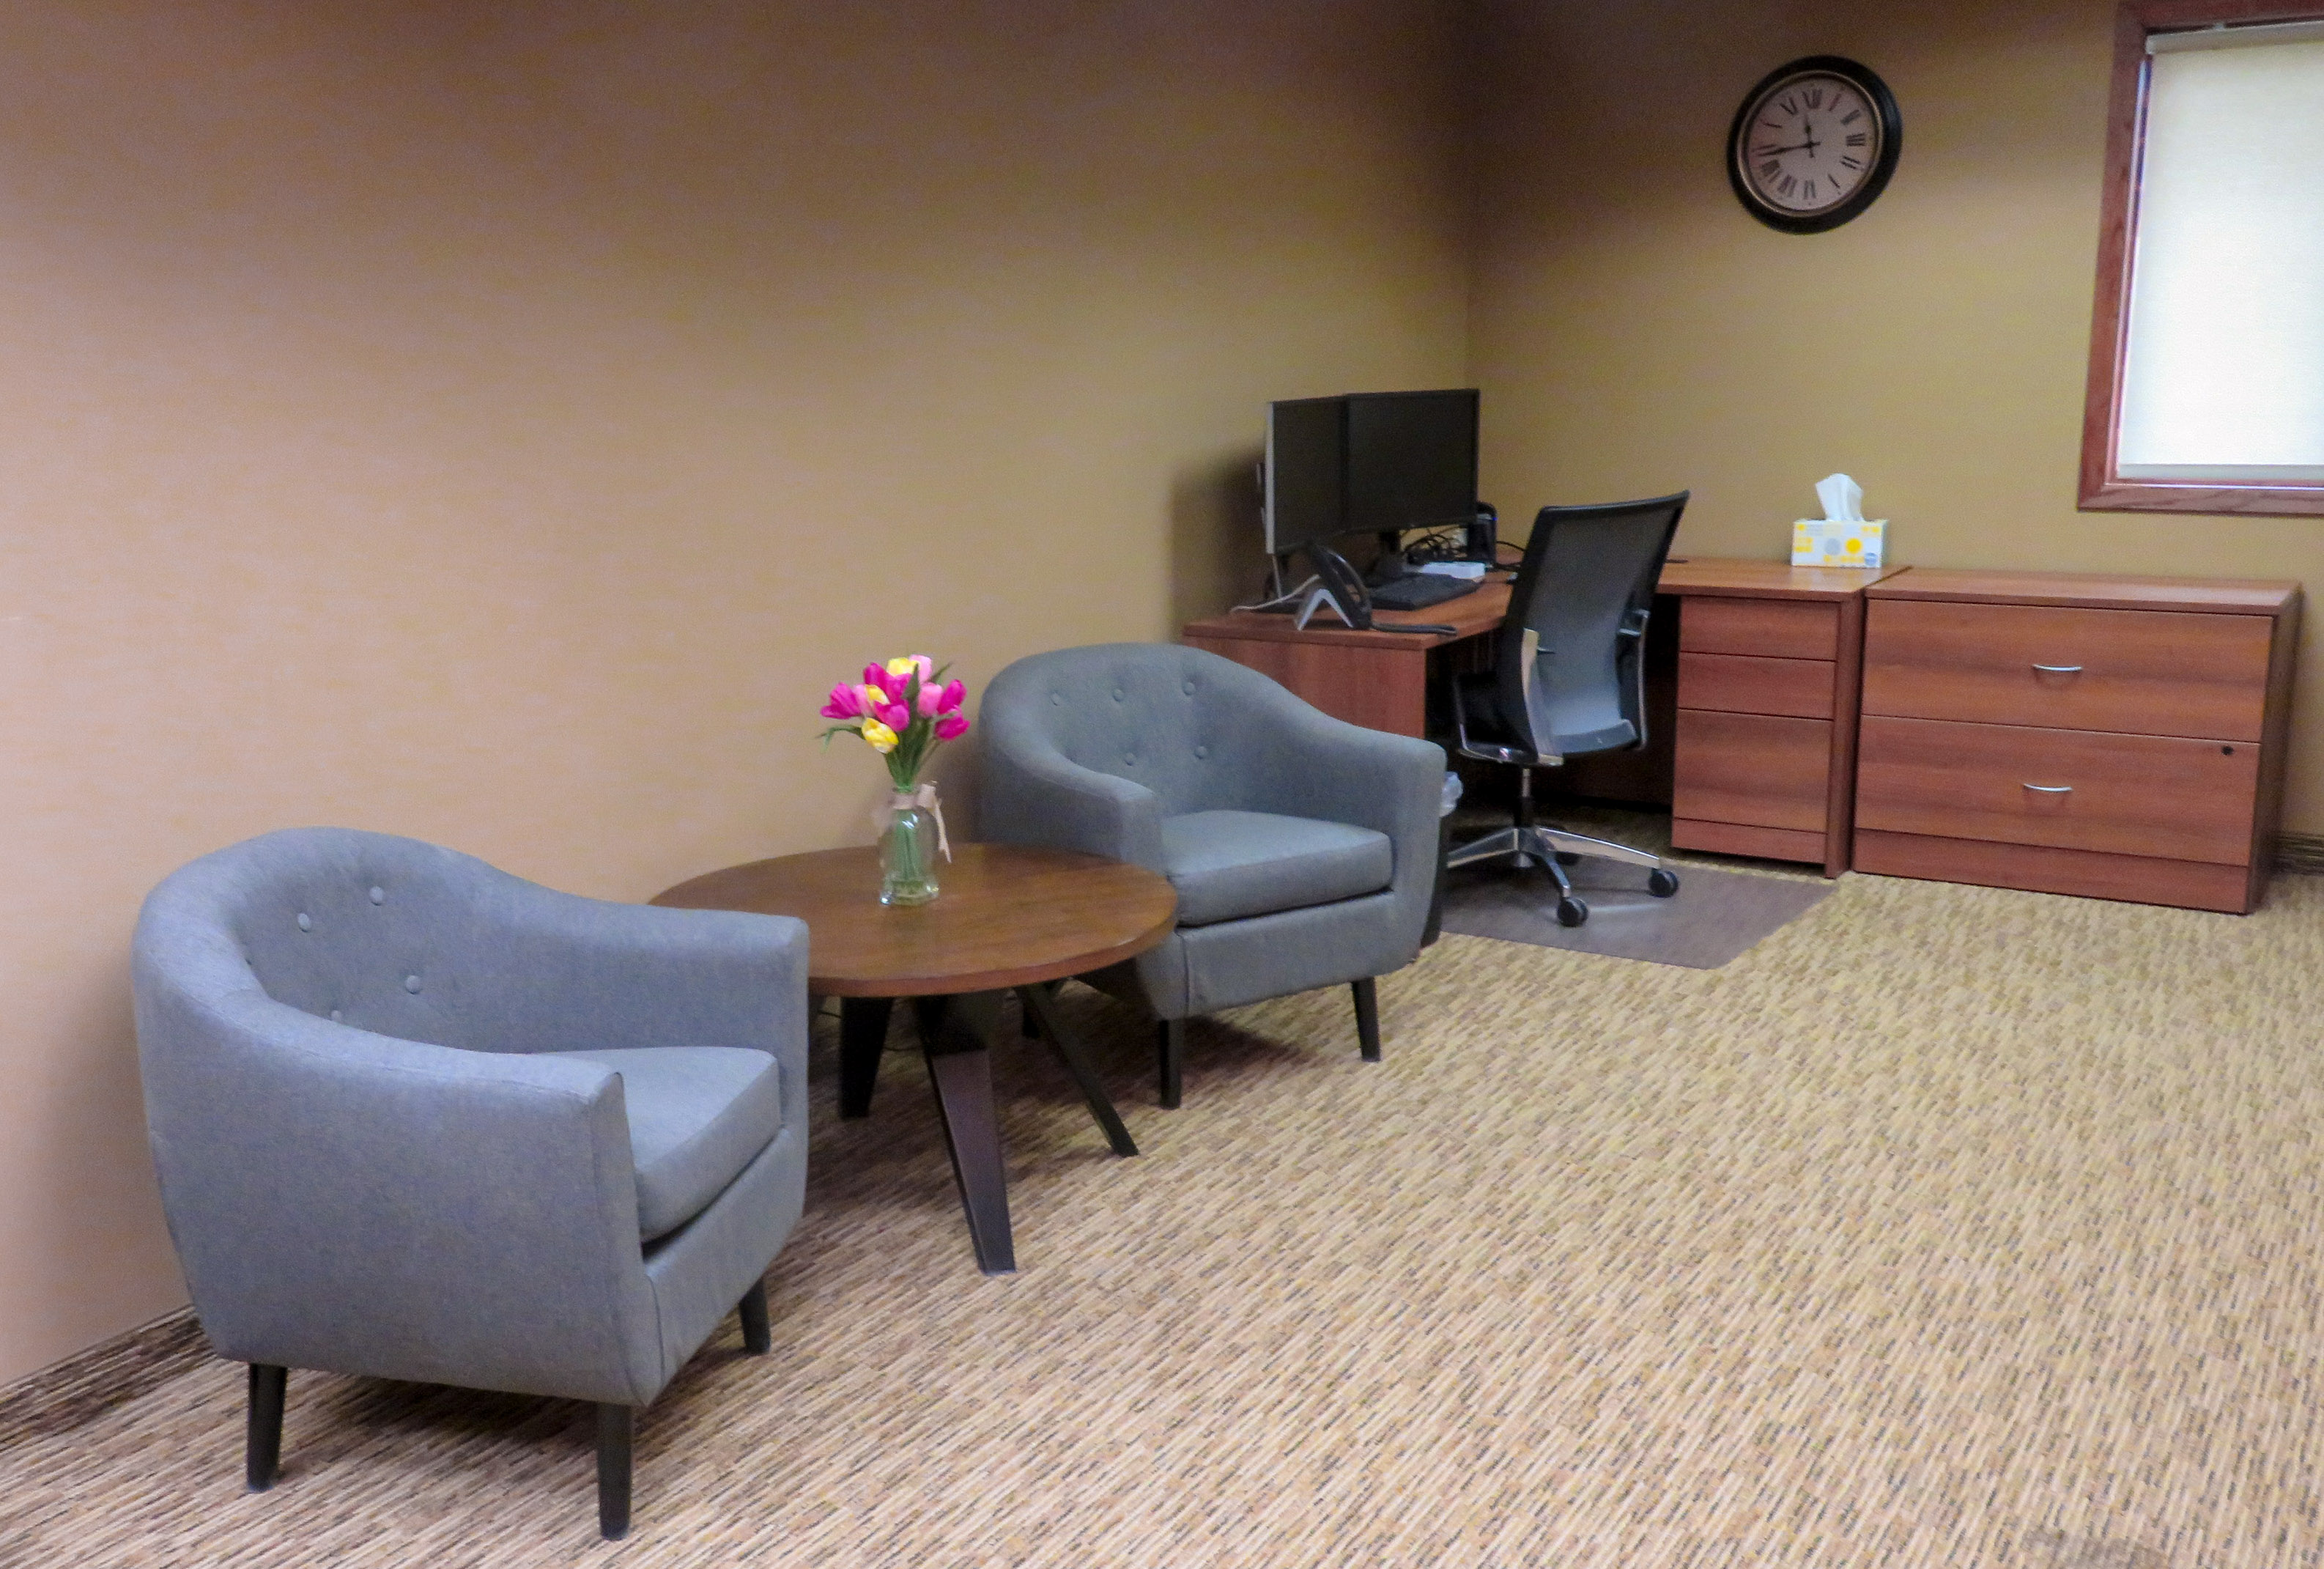 Another photo of the visitor space from another angle. It shows the area behind the reception desk with two chairs and a desk with a computer.